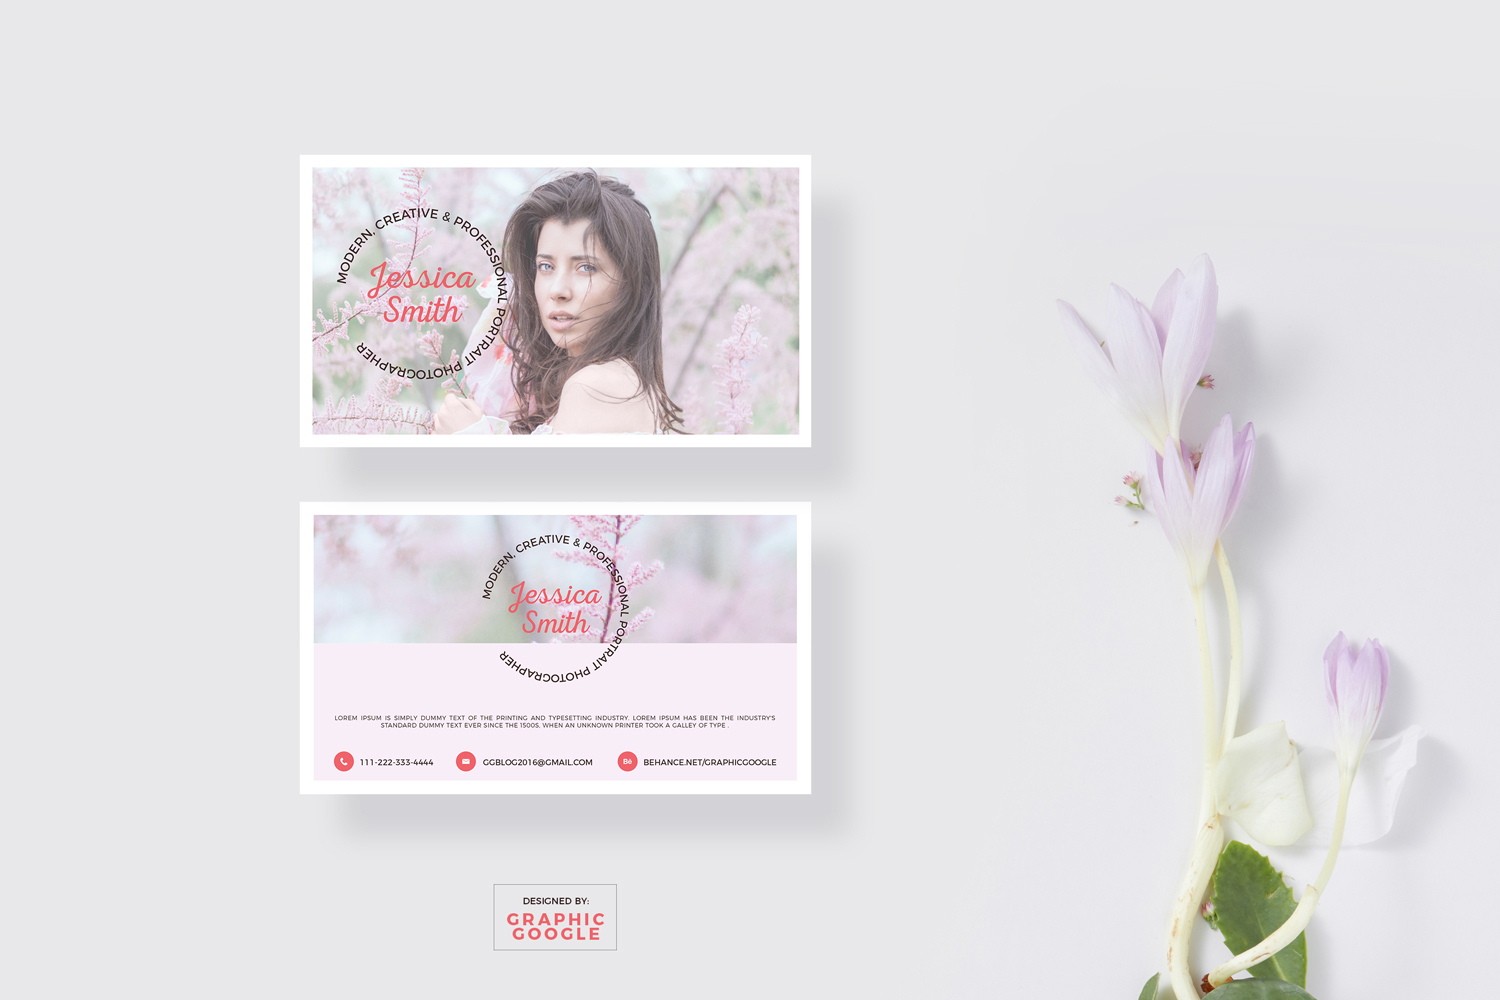 Free Blooming Business Card Mockup & Photographer Design Template